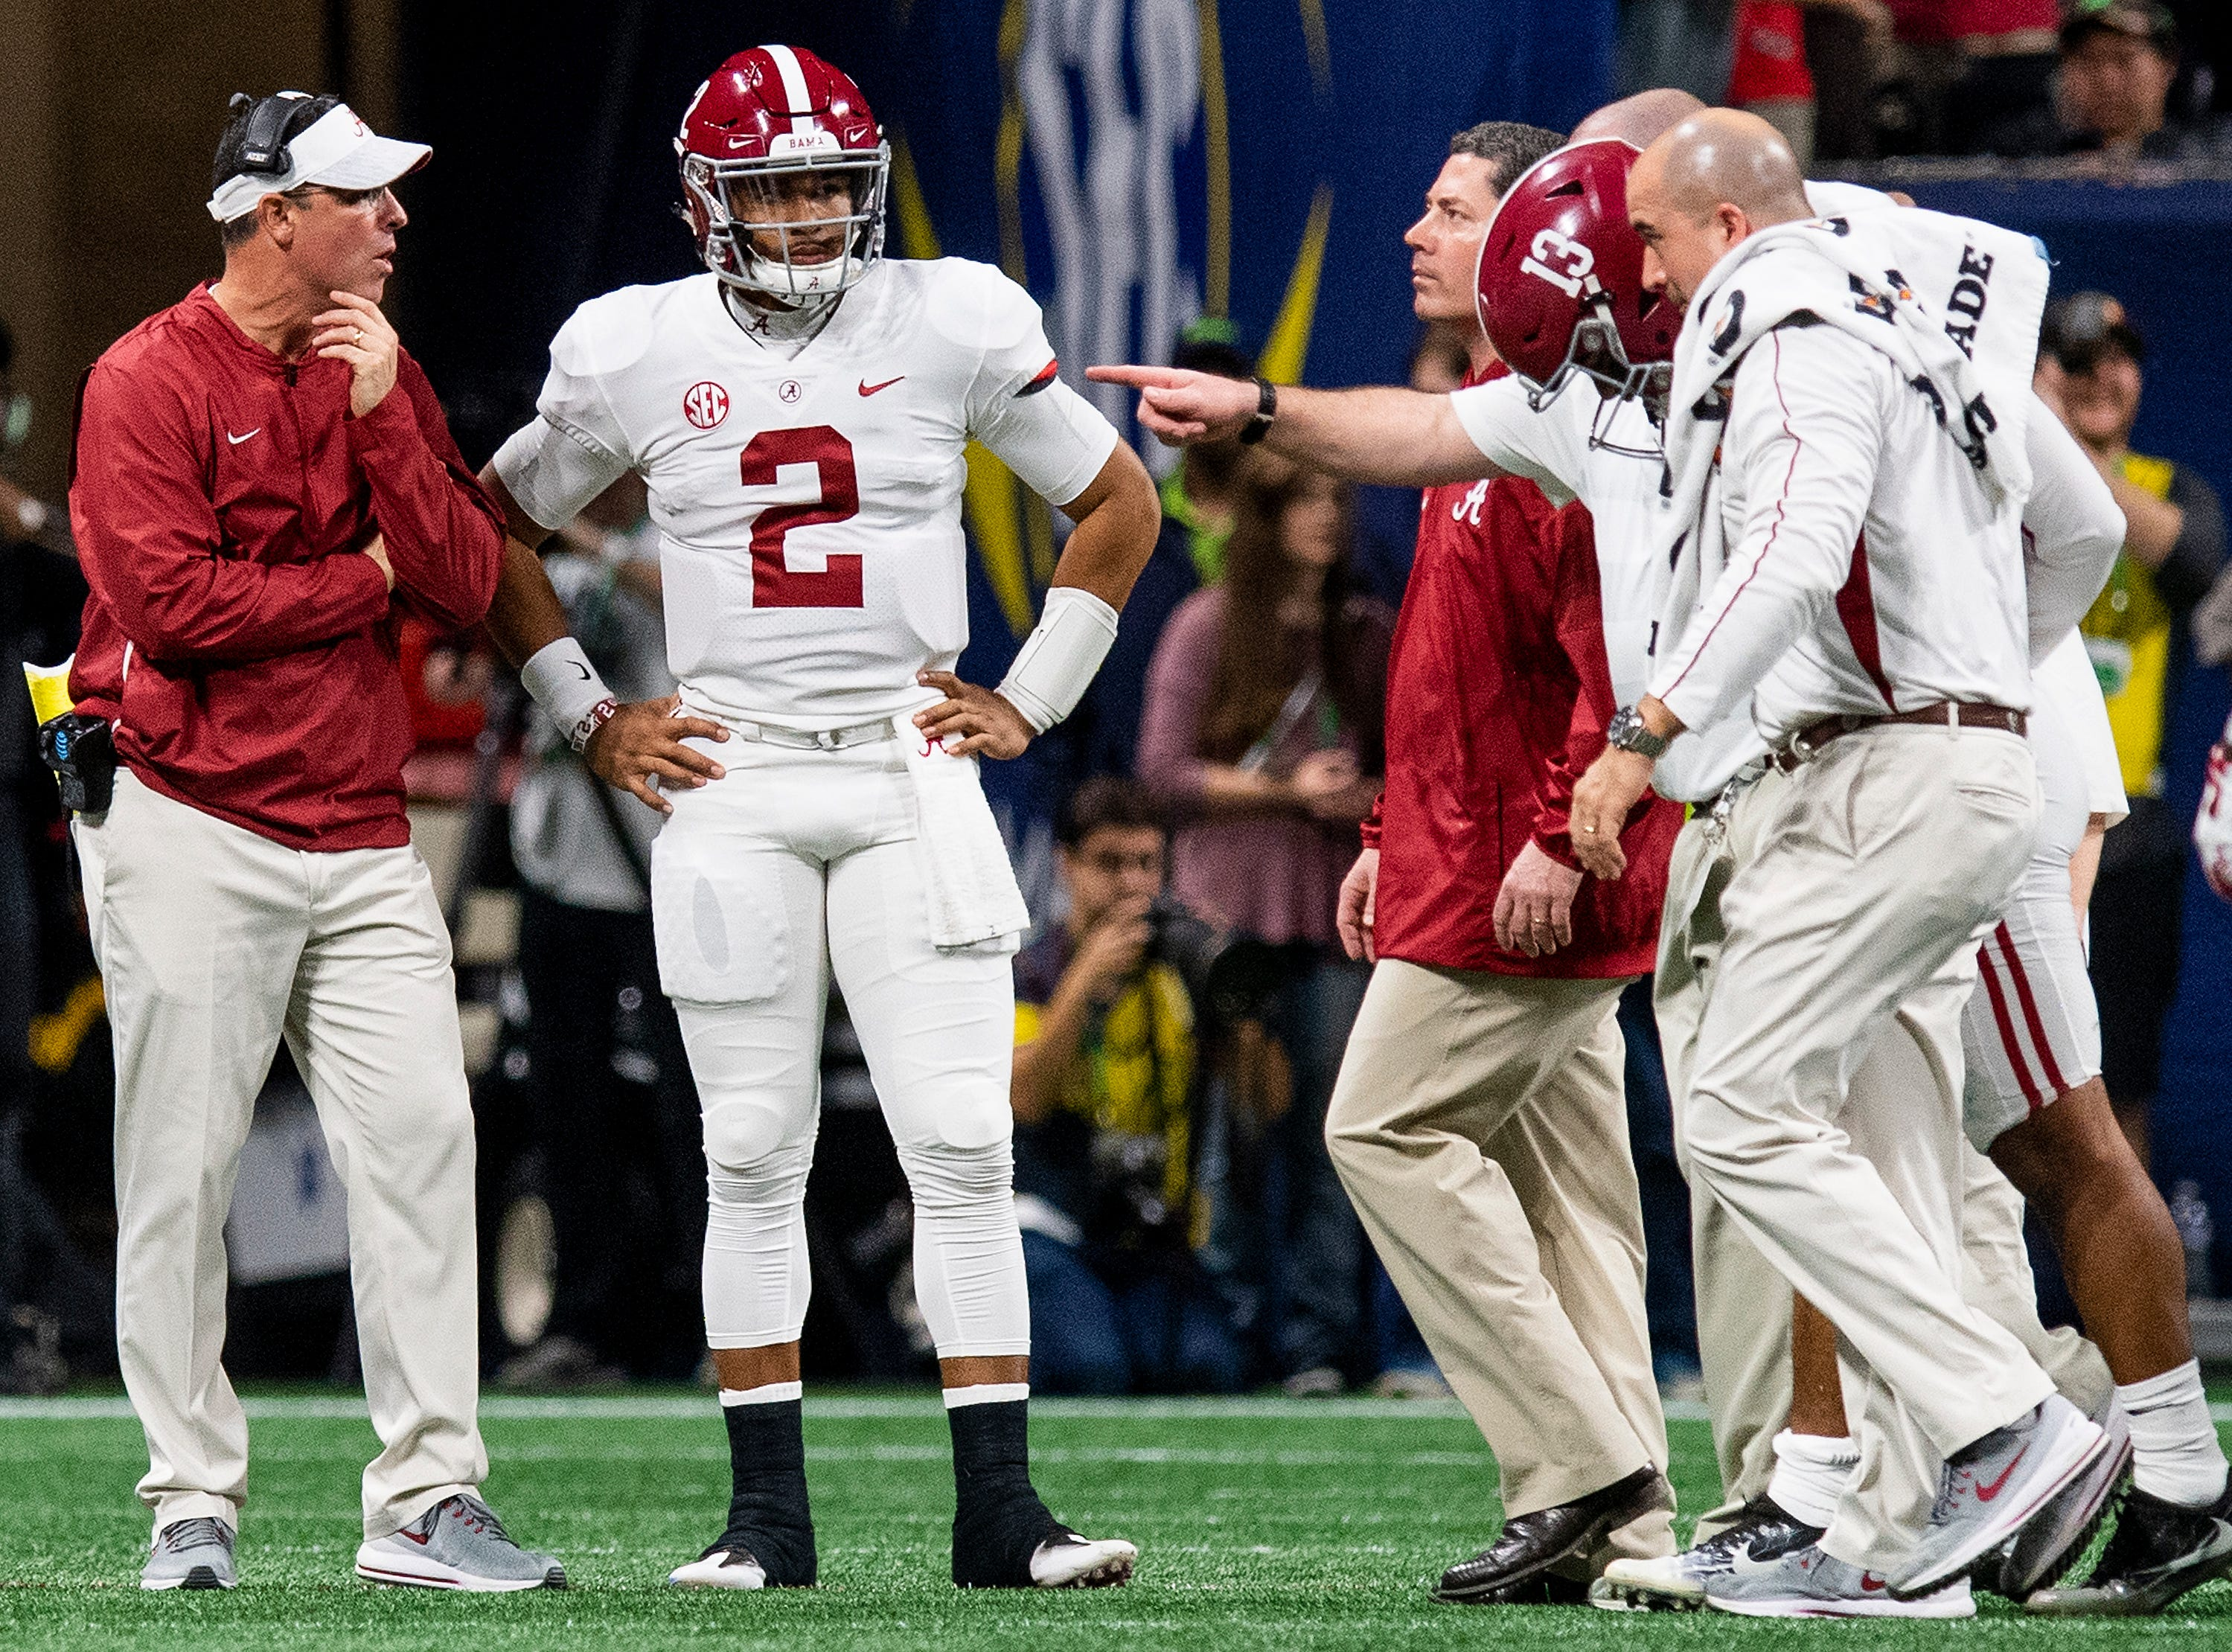 Injured Alabama quarterback Tua Tagovailoa (13) is helped off the field as quarterback Jalen Hurts (2) talks with quarterbacks coach Dan Enos in the SEC Championship Game at Mercedes Benz Stadium in Atlanta, Ga., on Saturday December 1, 2018.